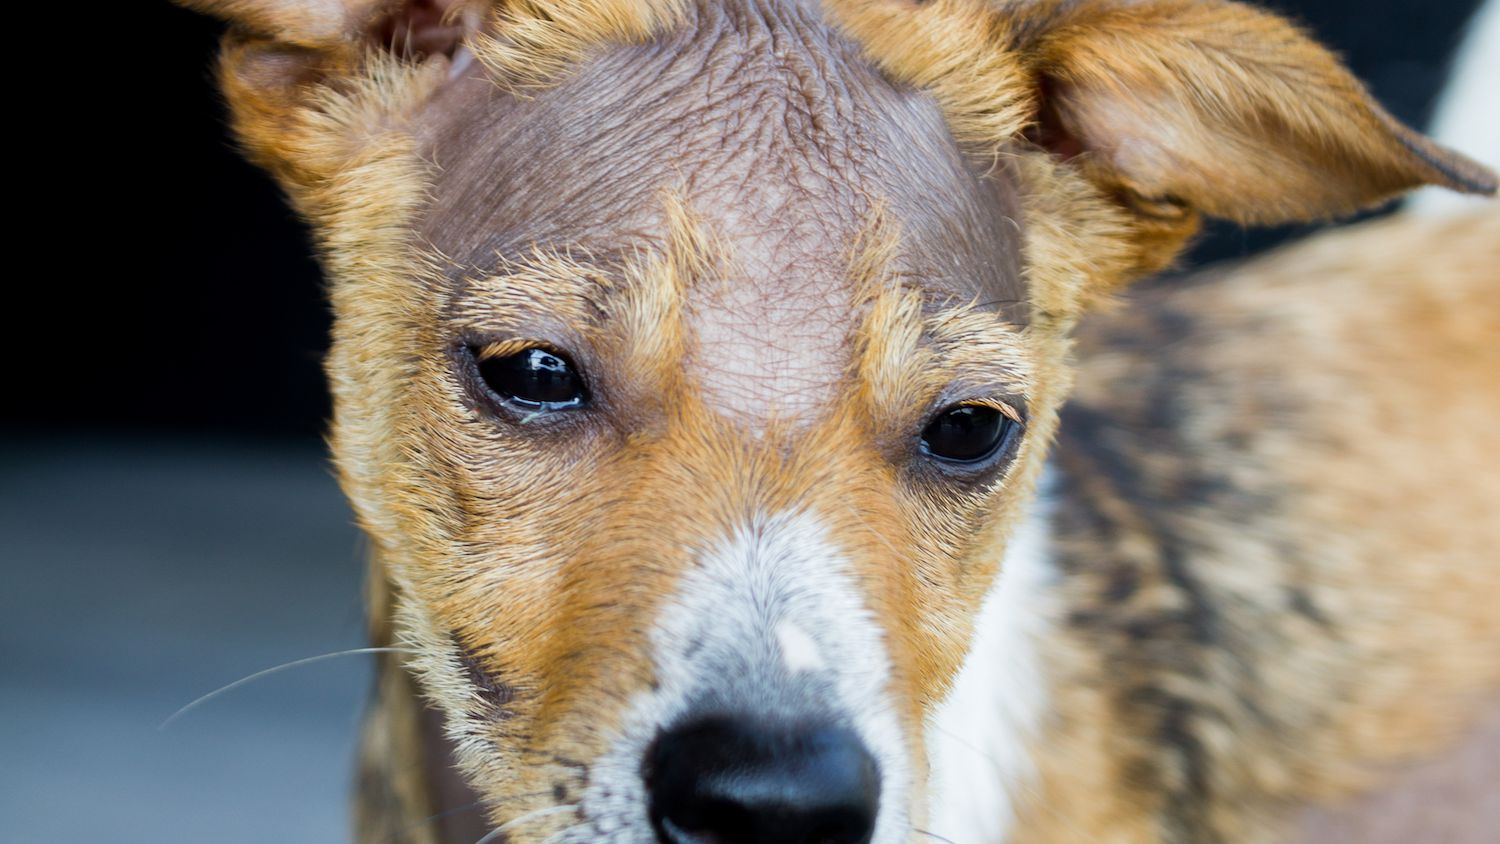 Pictures of Skin Conditions in Dogs